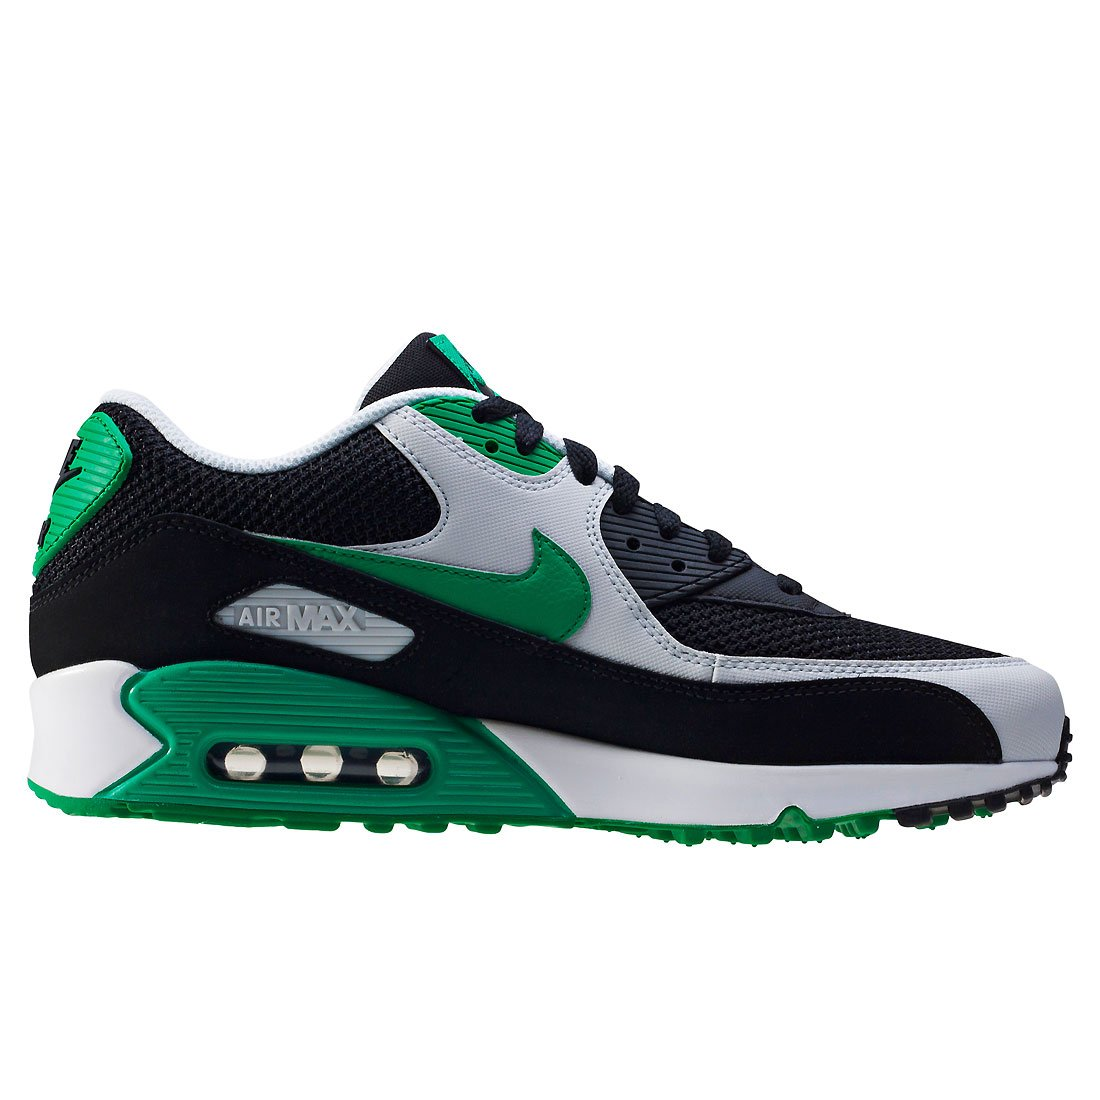 new concept 64cc4 3702c Nike AIR MAX 90 ESSENTIAL 537384 067 Black Green Trainers  Amazon.co.uk   Shoes   Bags